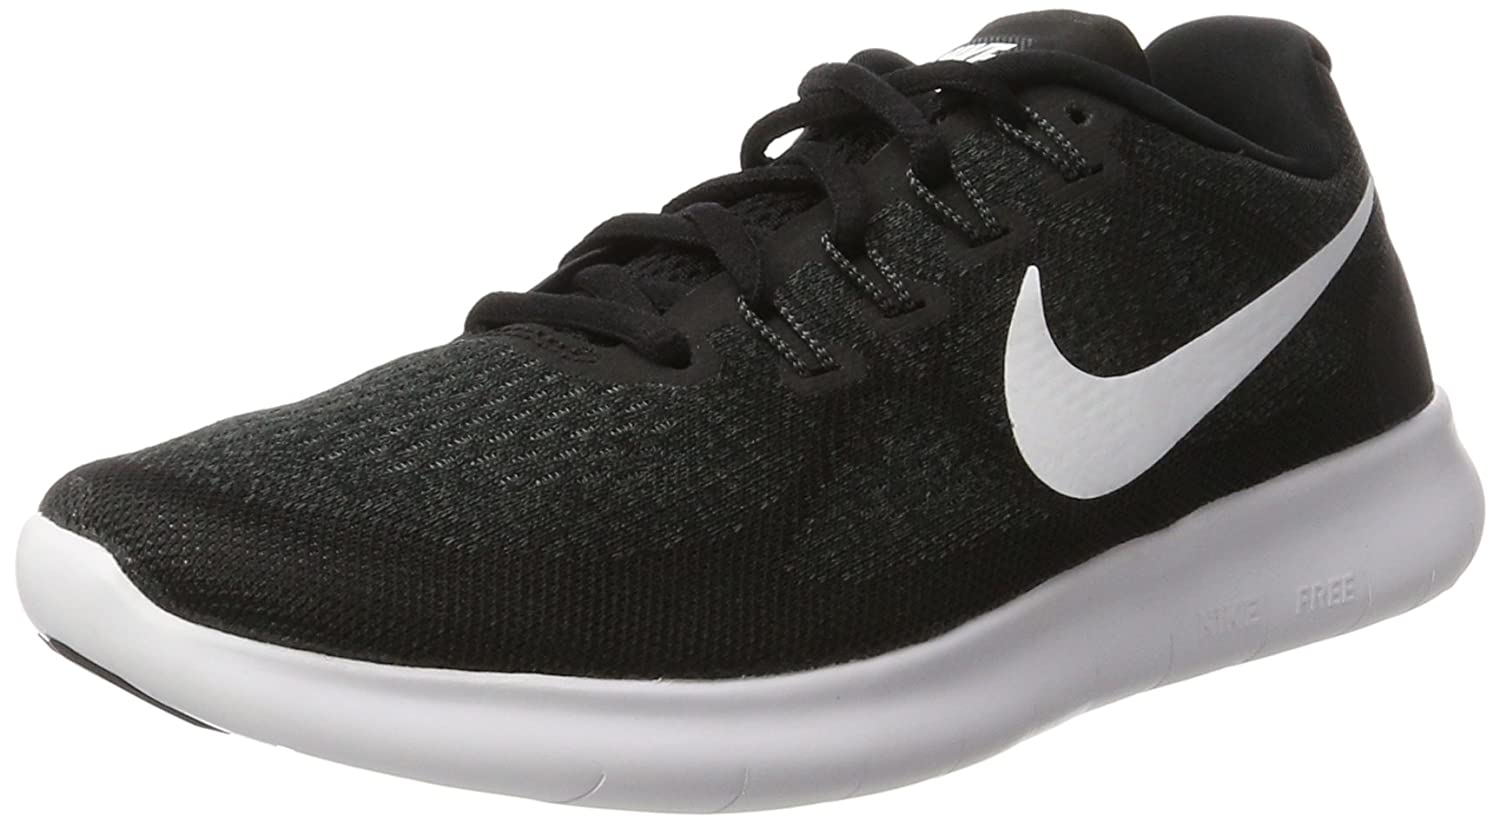 sports shoes 80b13 a2f10 Amazon.com  NIKE Mens Free RN Running Shoe  Road Running